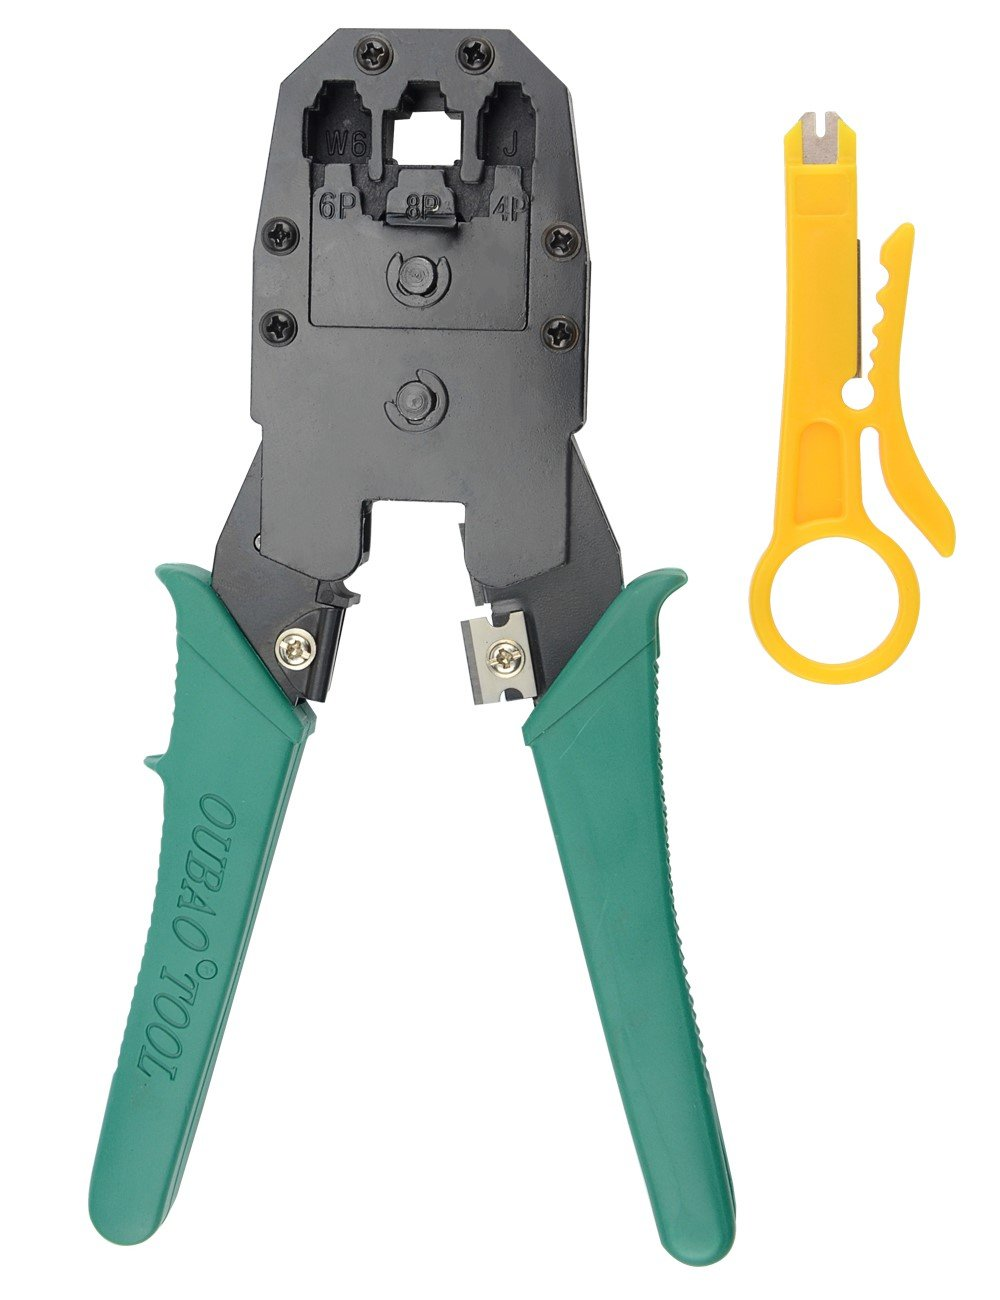 BXQINLENX Professional Multi-function Wire Crimper Telephone Tool Crimps Cable Wire Stripper Wire Crimper And Cuter For 8P8C RJ-45 6P6C RJ-11 RJ-22 4P4C (Crimper)